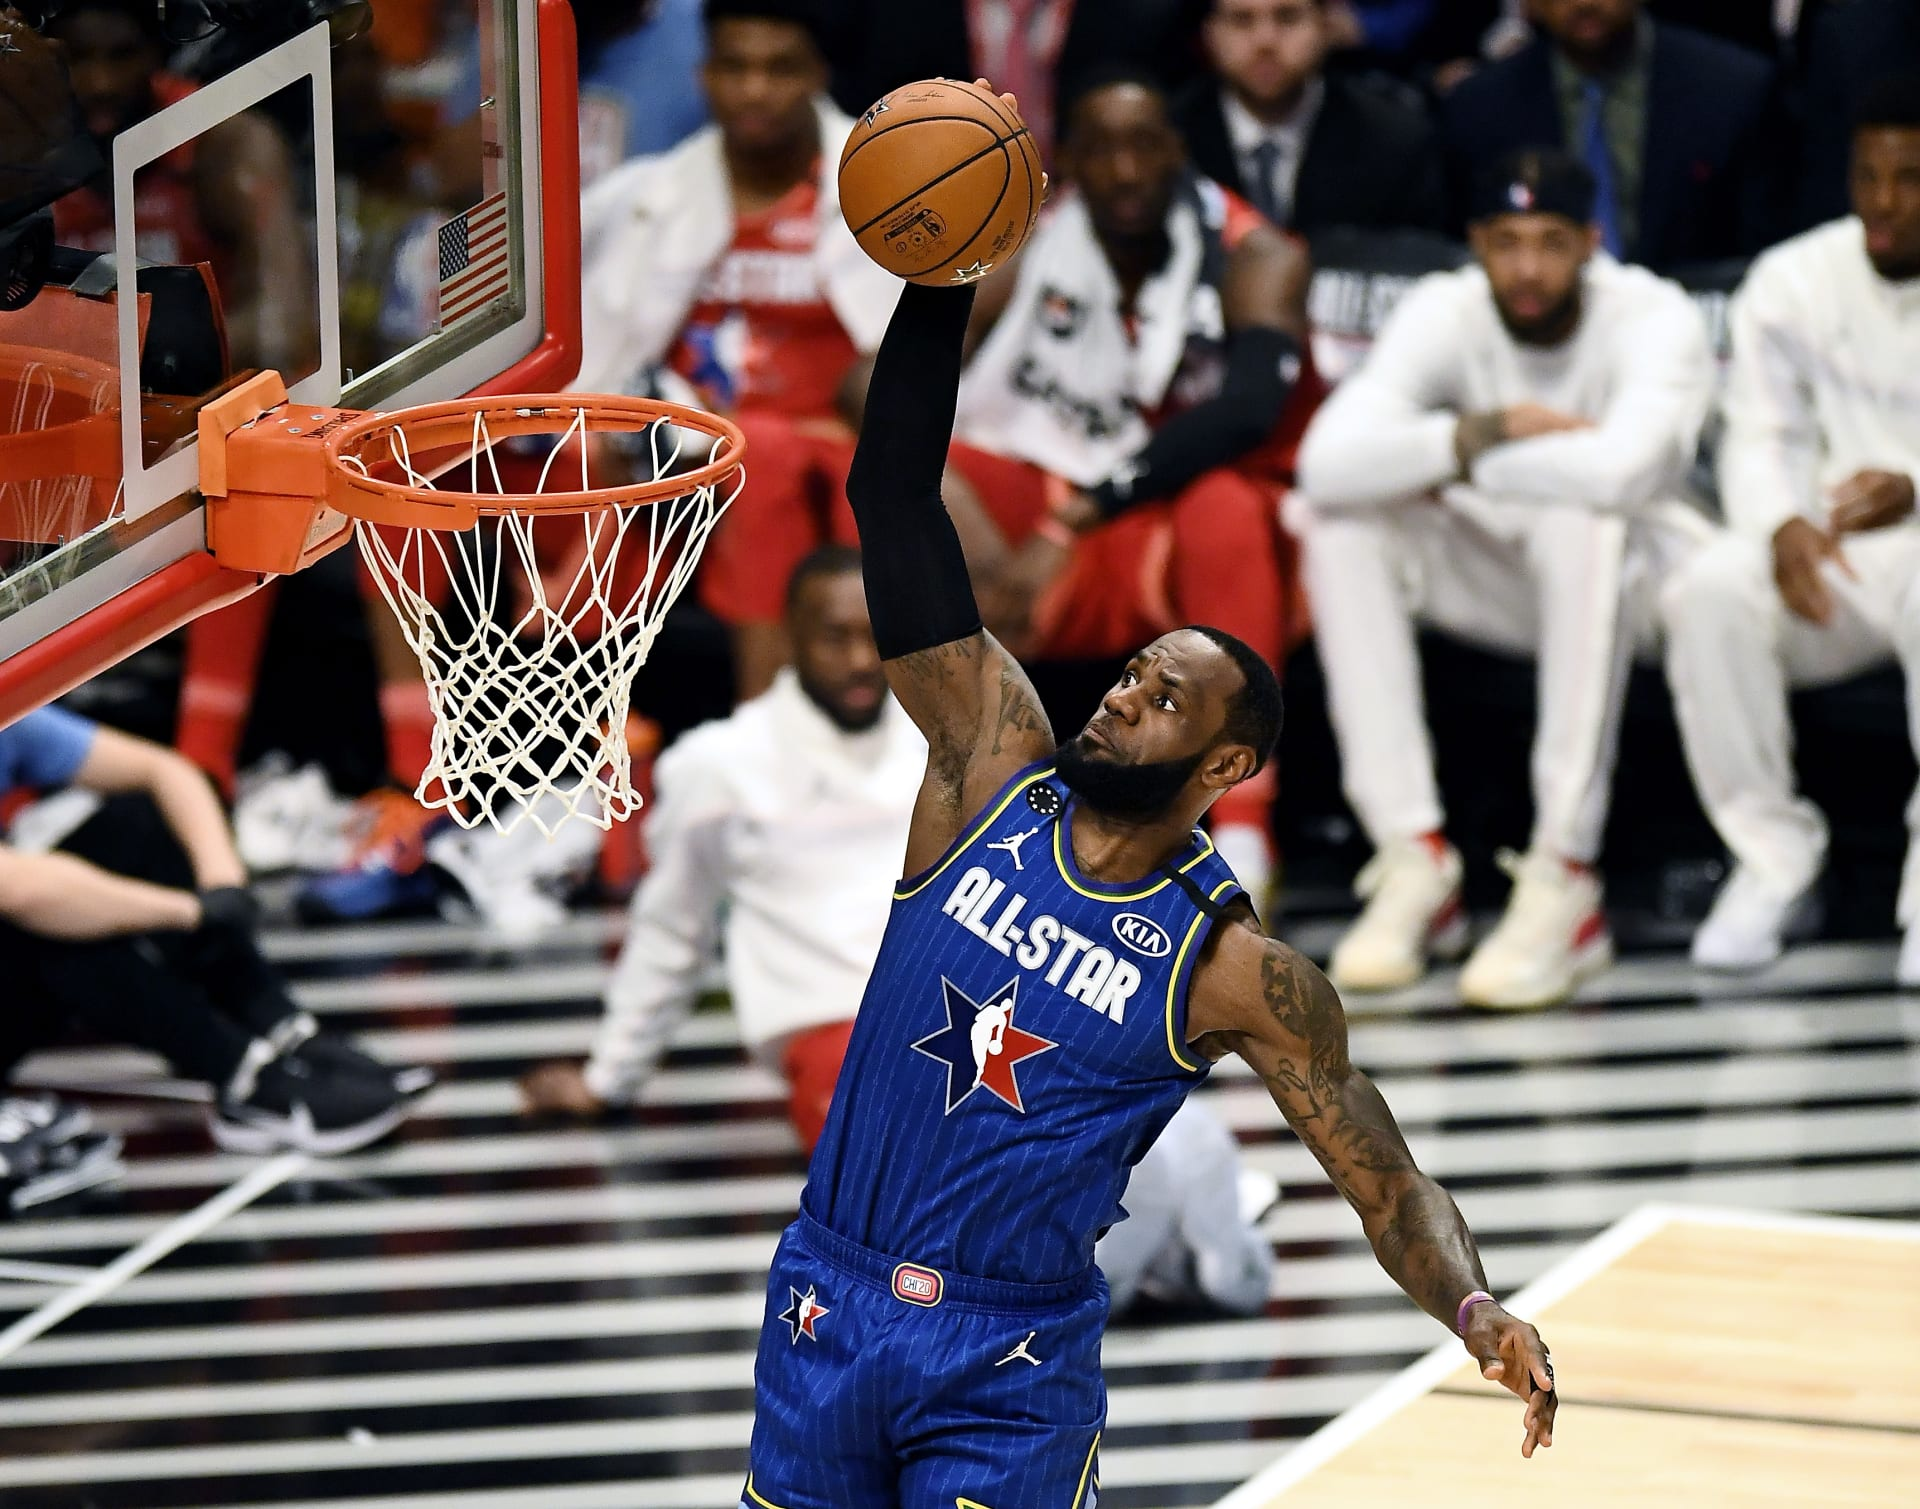 The Best Moments from NBA All-Star Weekend 2020 | Complex